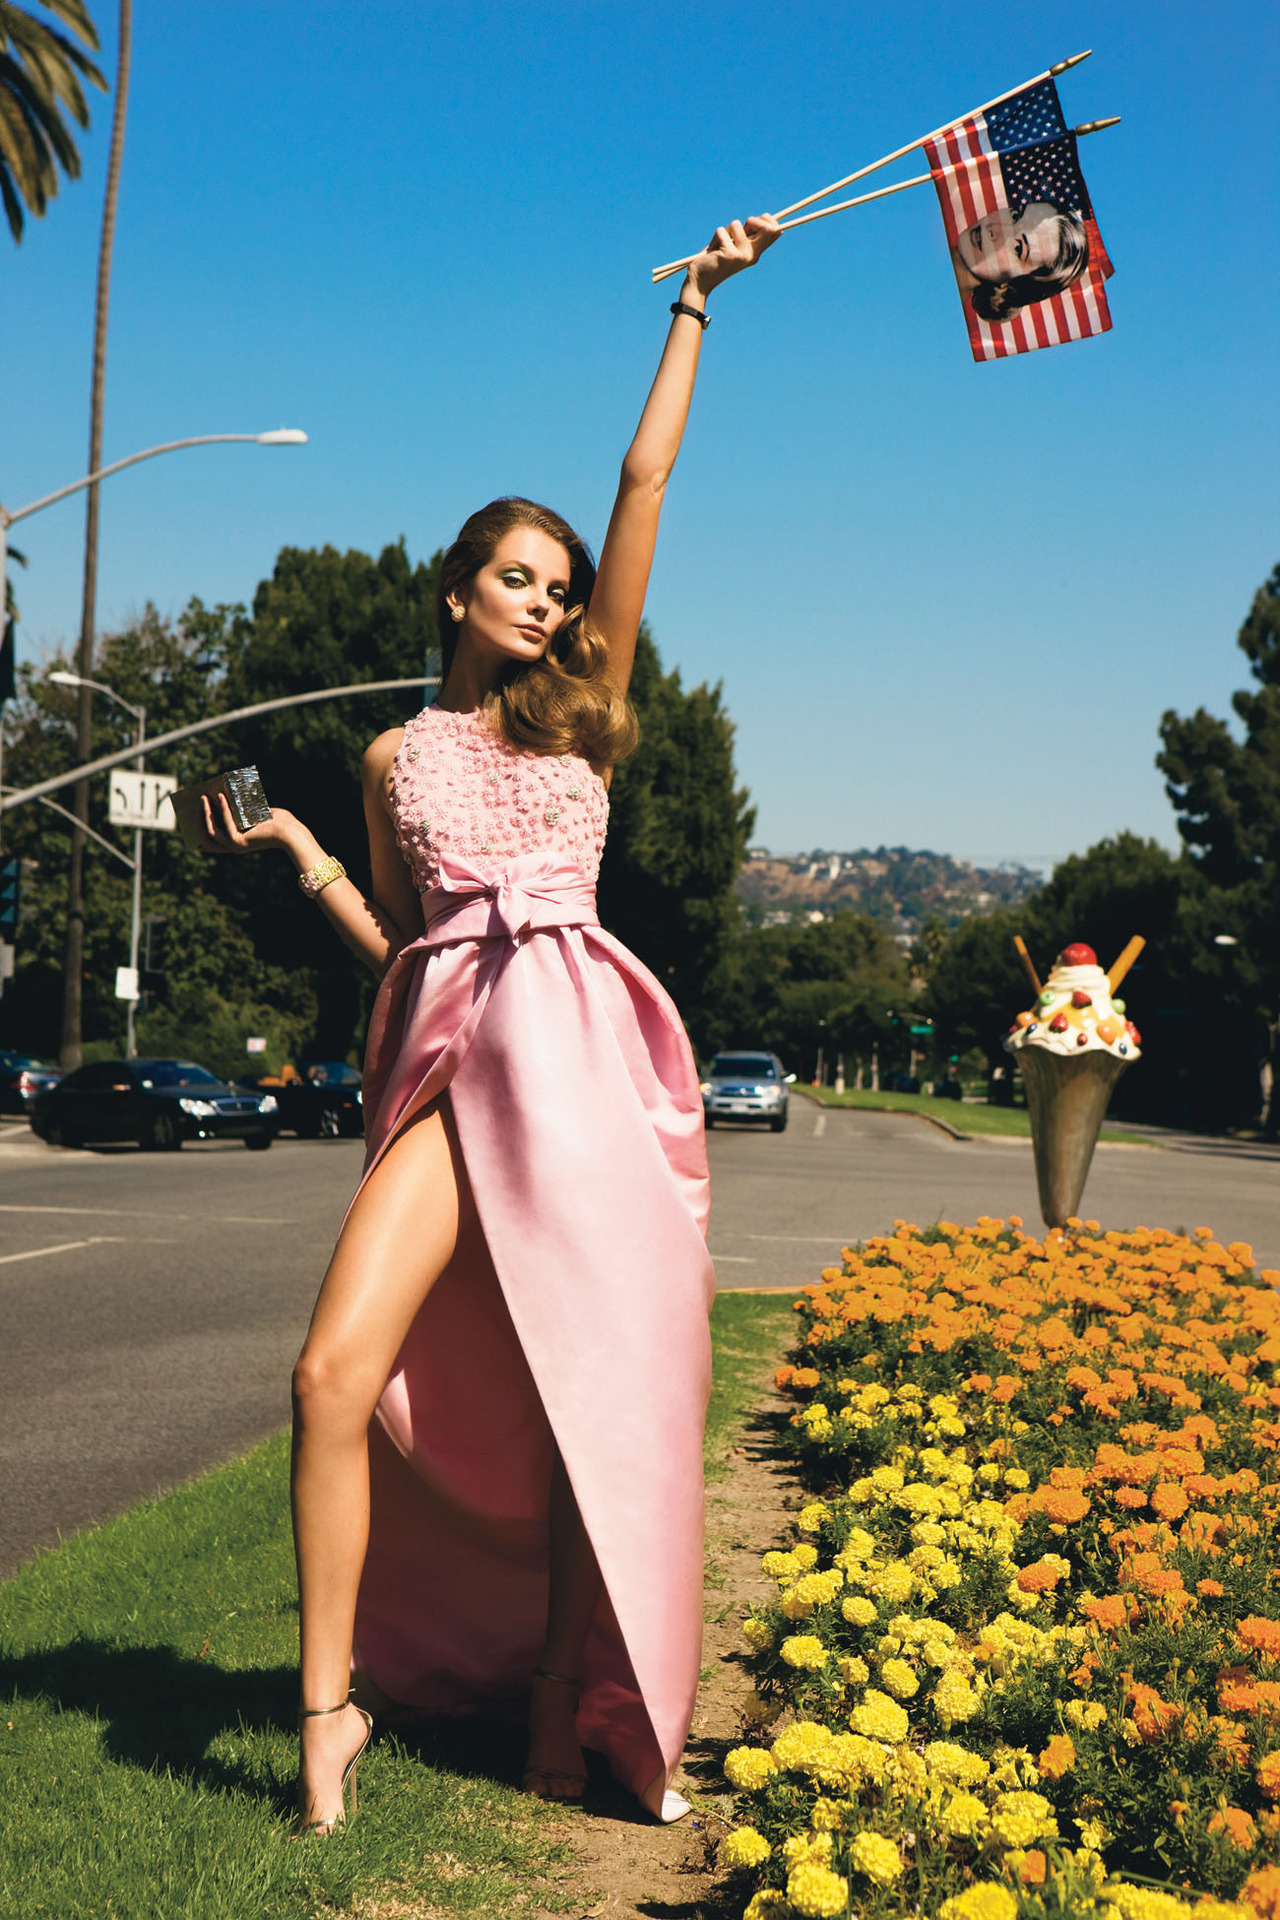 Photo by Inez van Lamsweerde and Vinoodh Matadin Yay America! Happy July 4th!